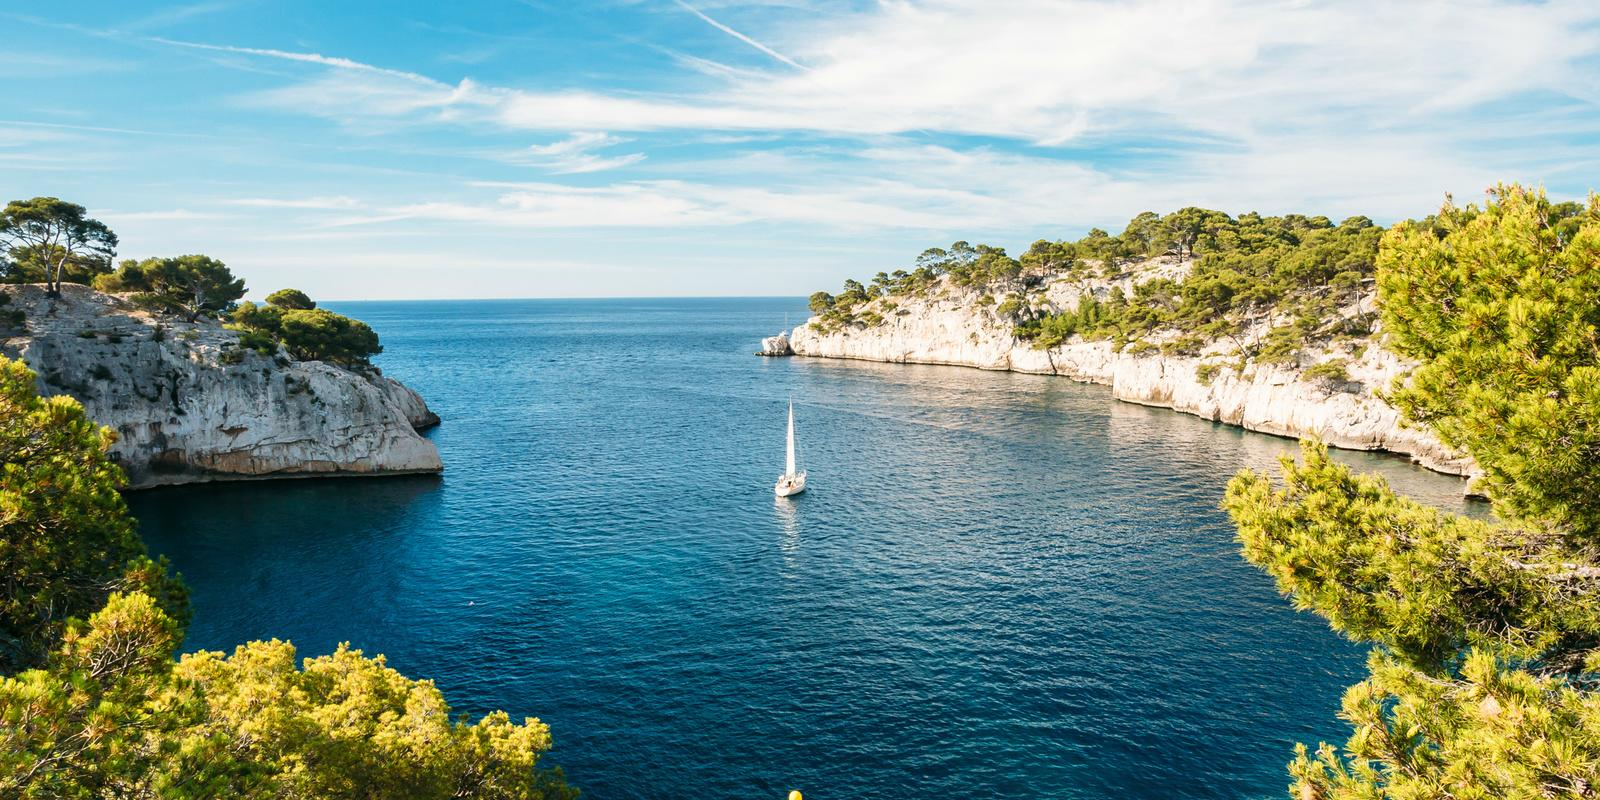 Get onboard for a pleasant discovery sailing cruise of the Calanques